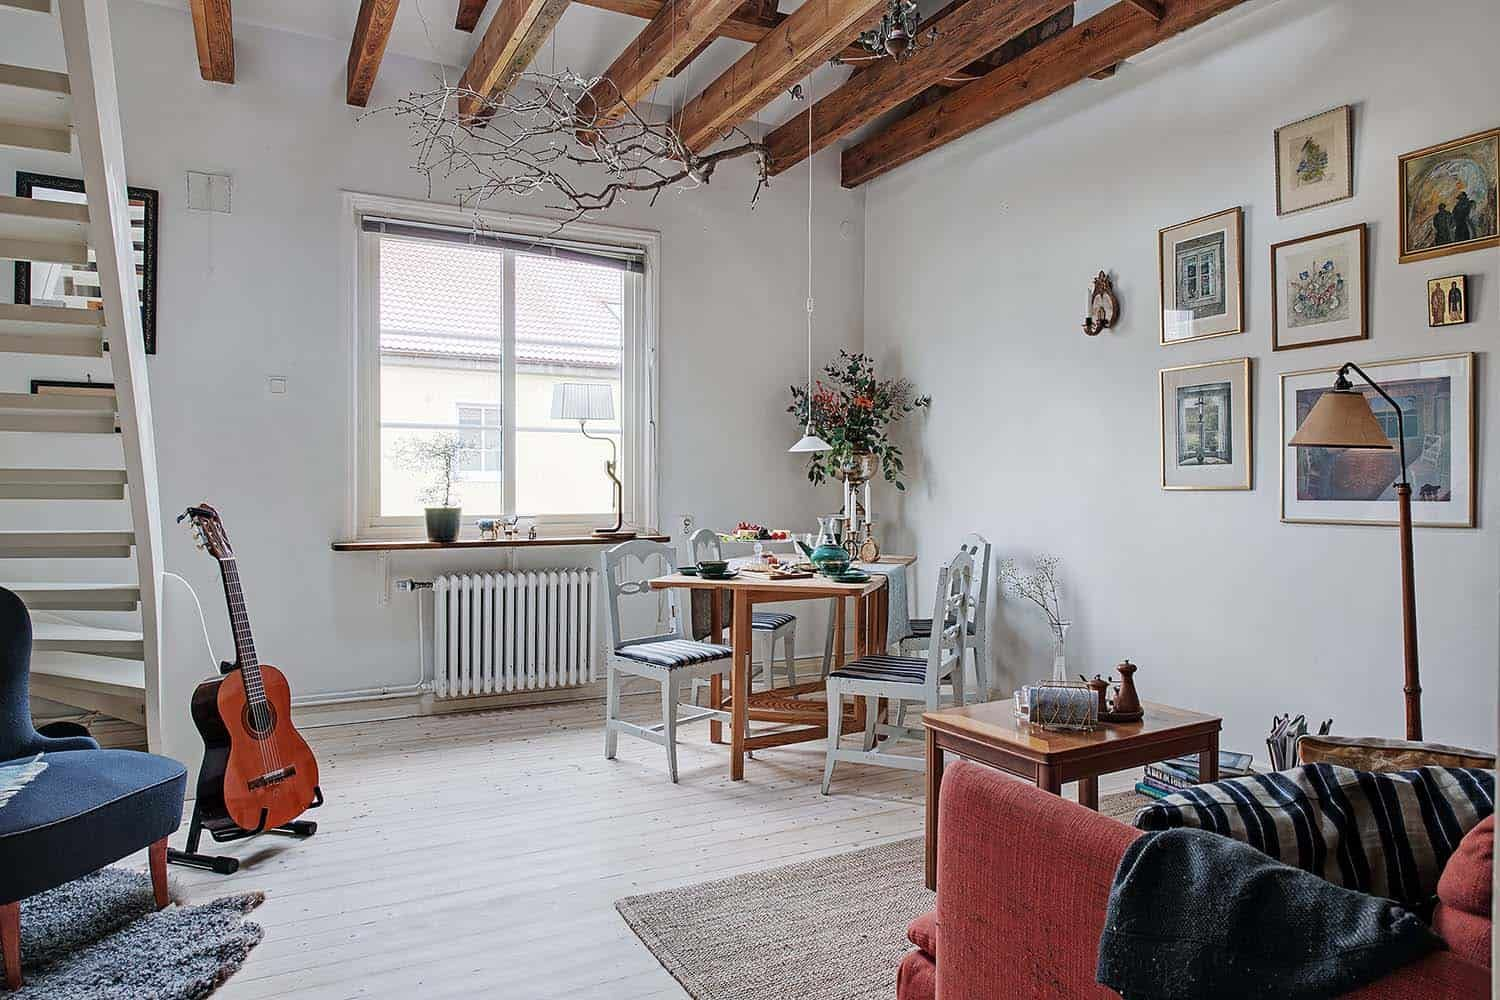 Charming onebedroom duplex apartment with cozy layout in